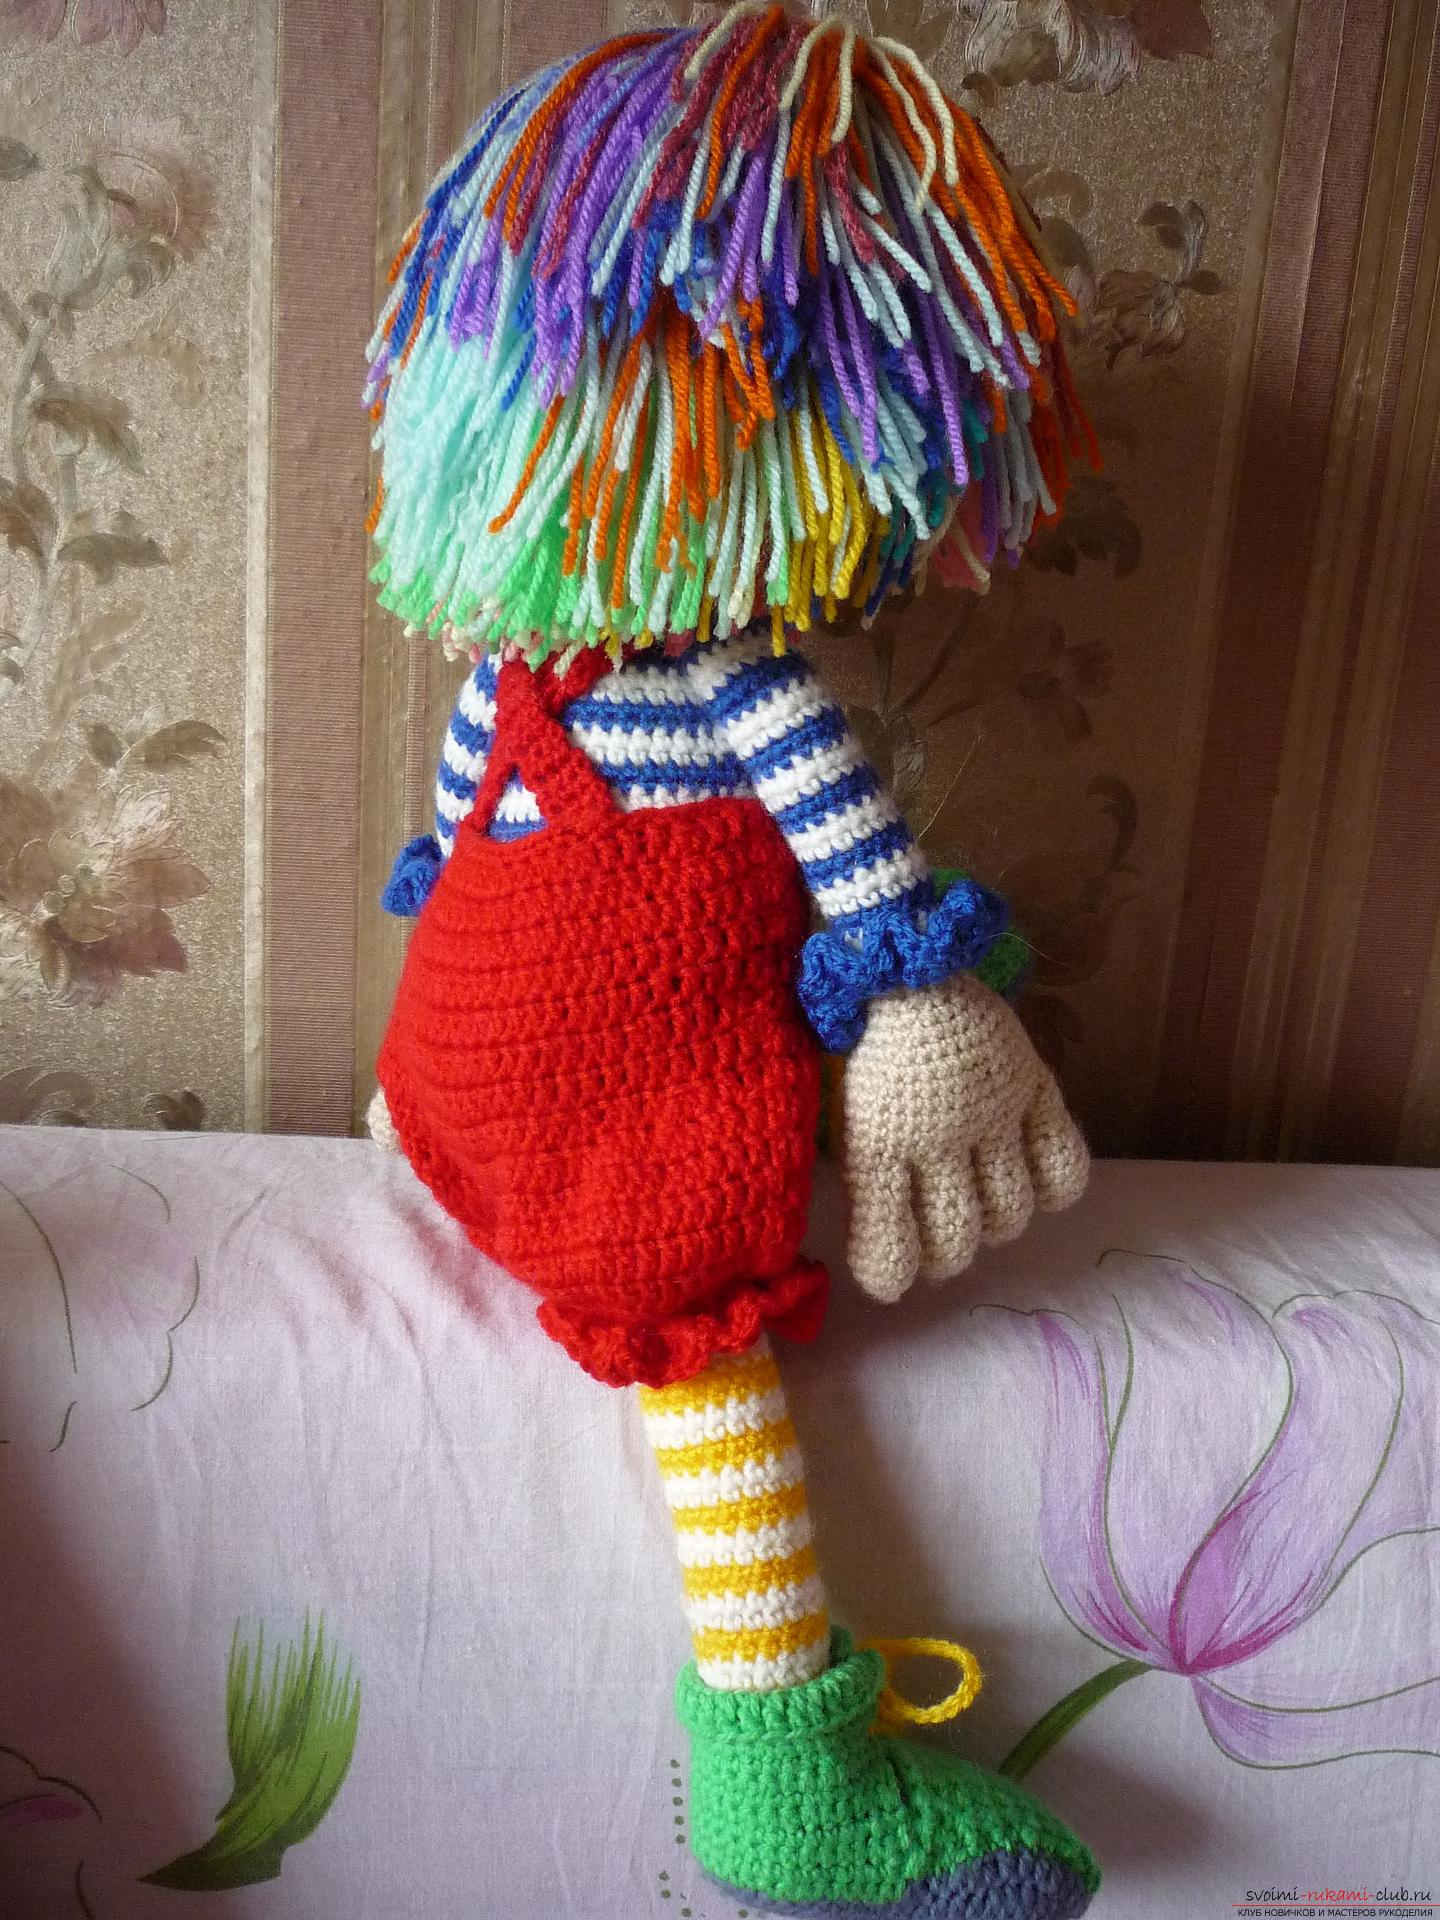 Detailed pictures of a clown toy crocheted from multi-colored yarn. Photo №6